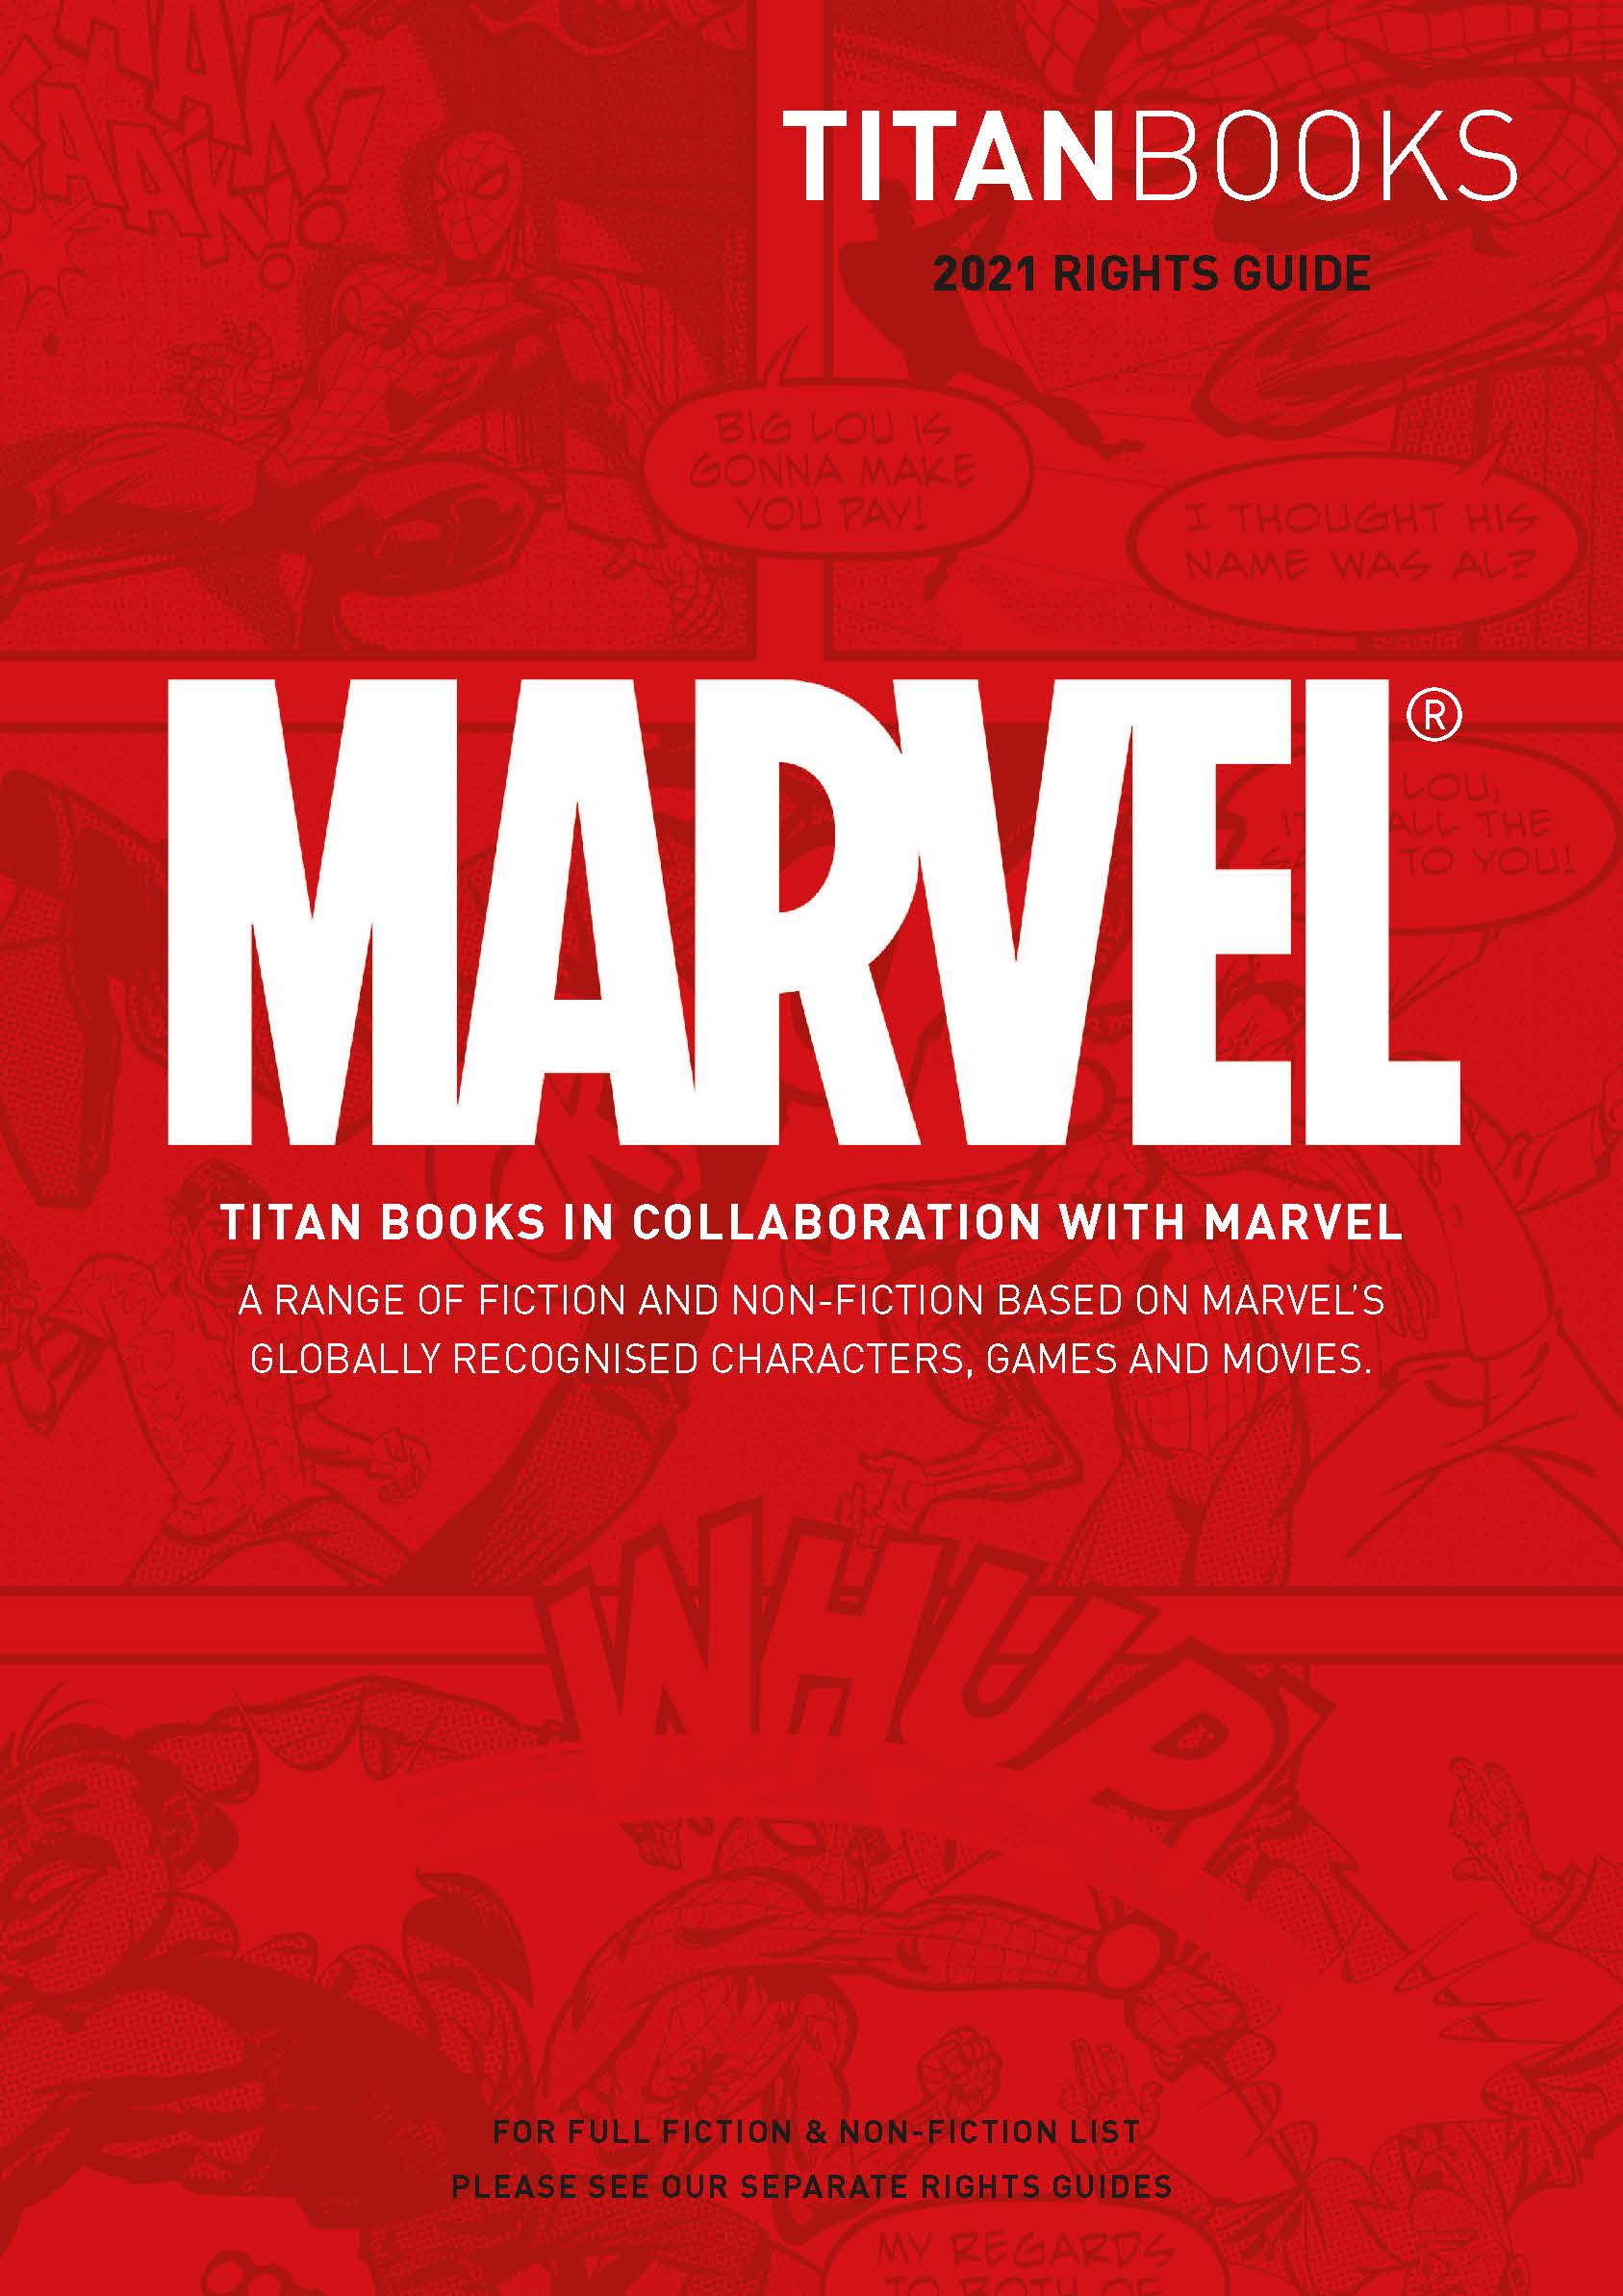 [Preview Image for Marvel Fiction & Non-Fiction]